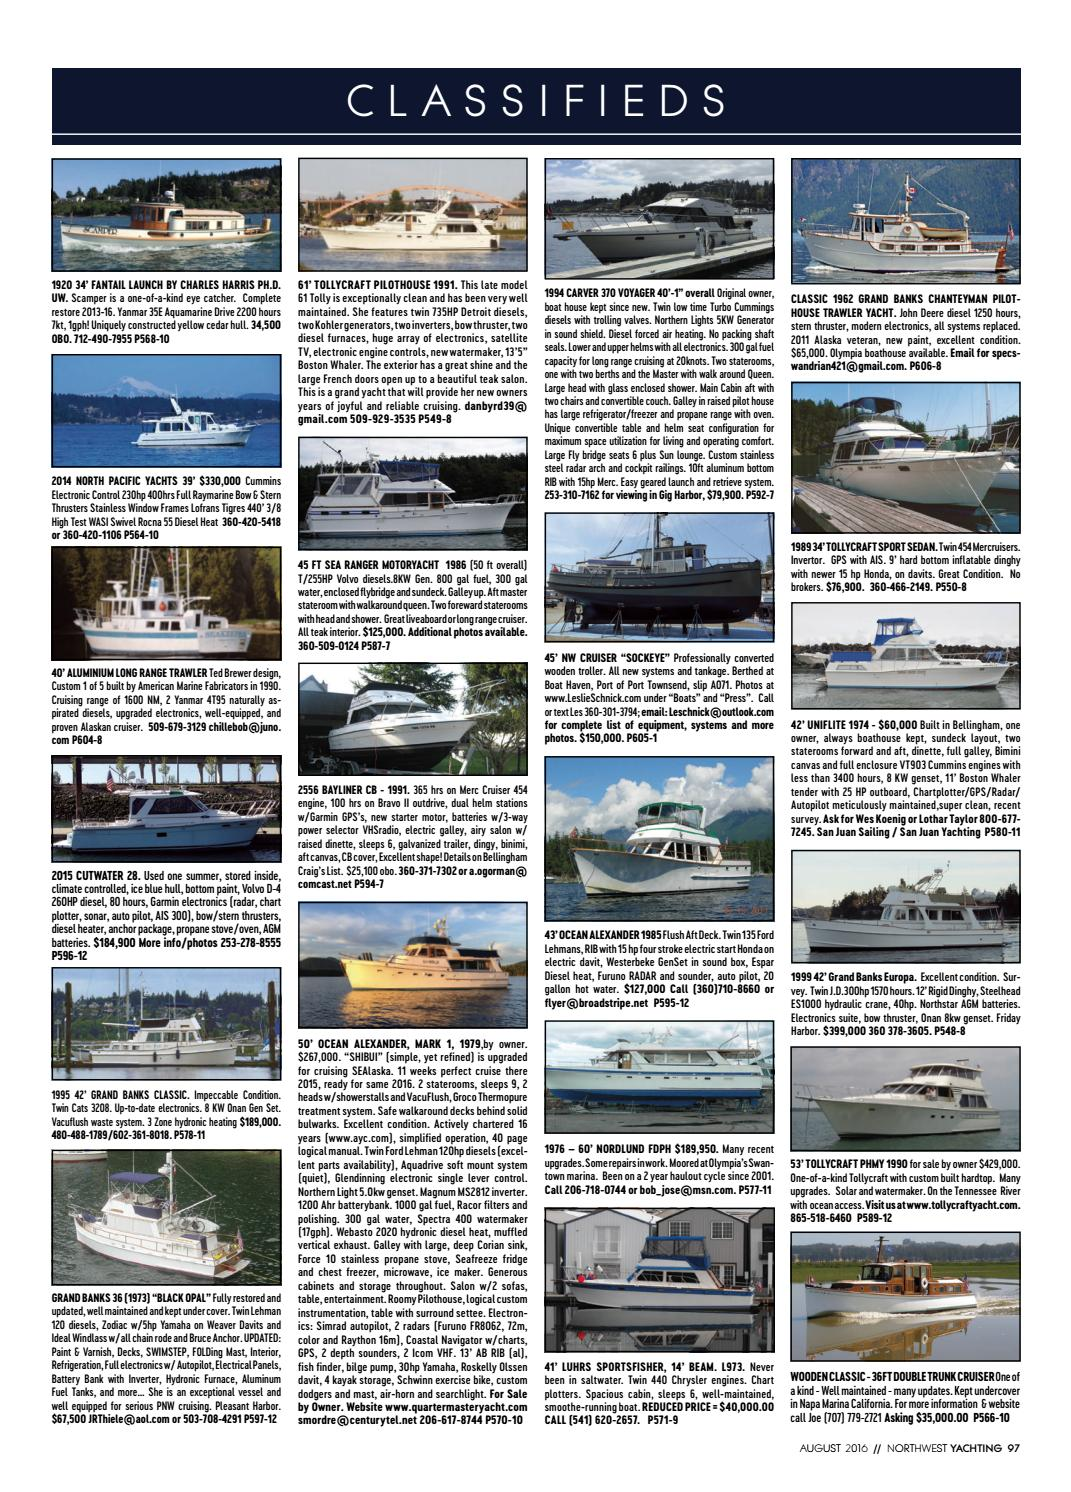 Northwest Yachting August 2016 by Northwest Yachting - issuu